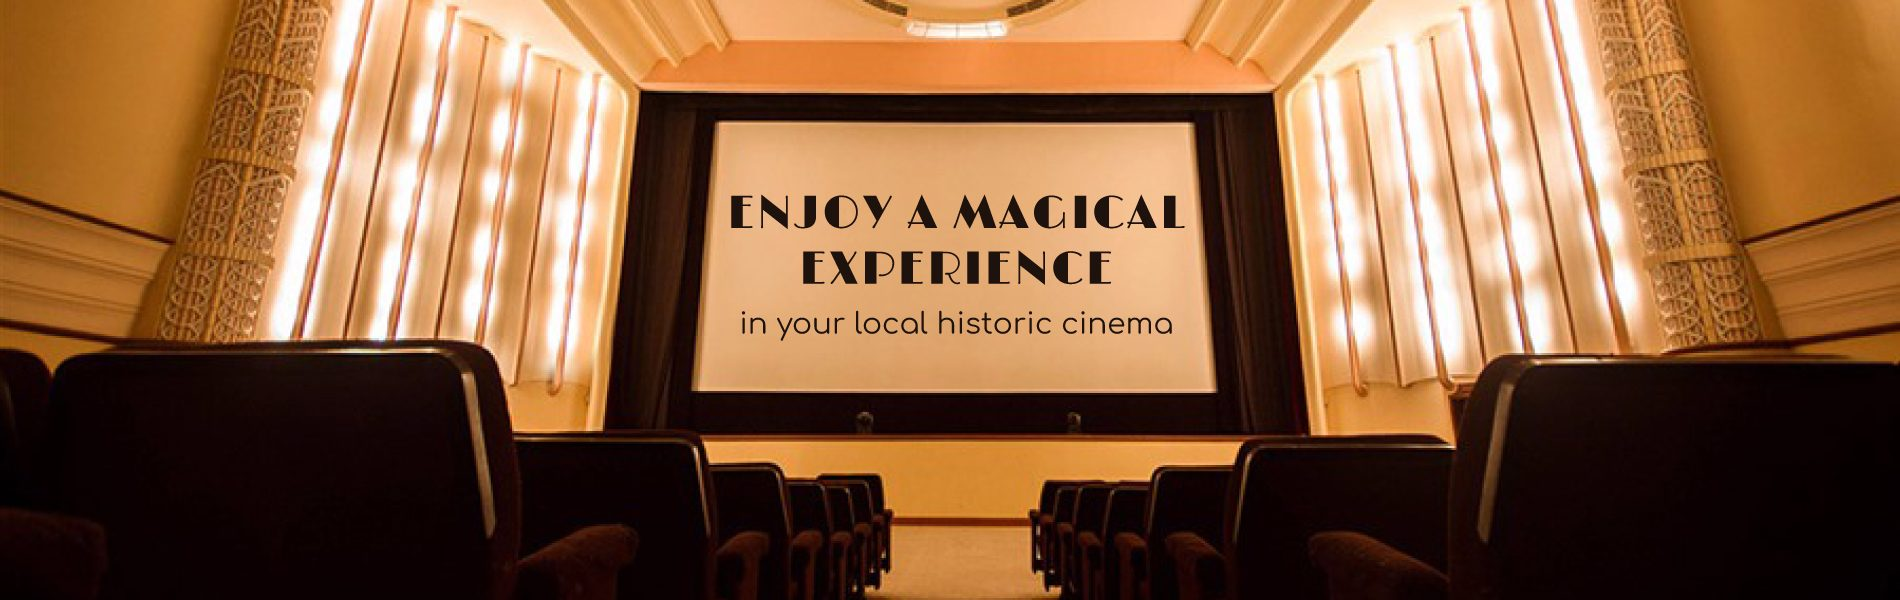 the regal theatre � enjoy a magical experience in your